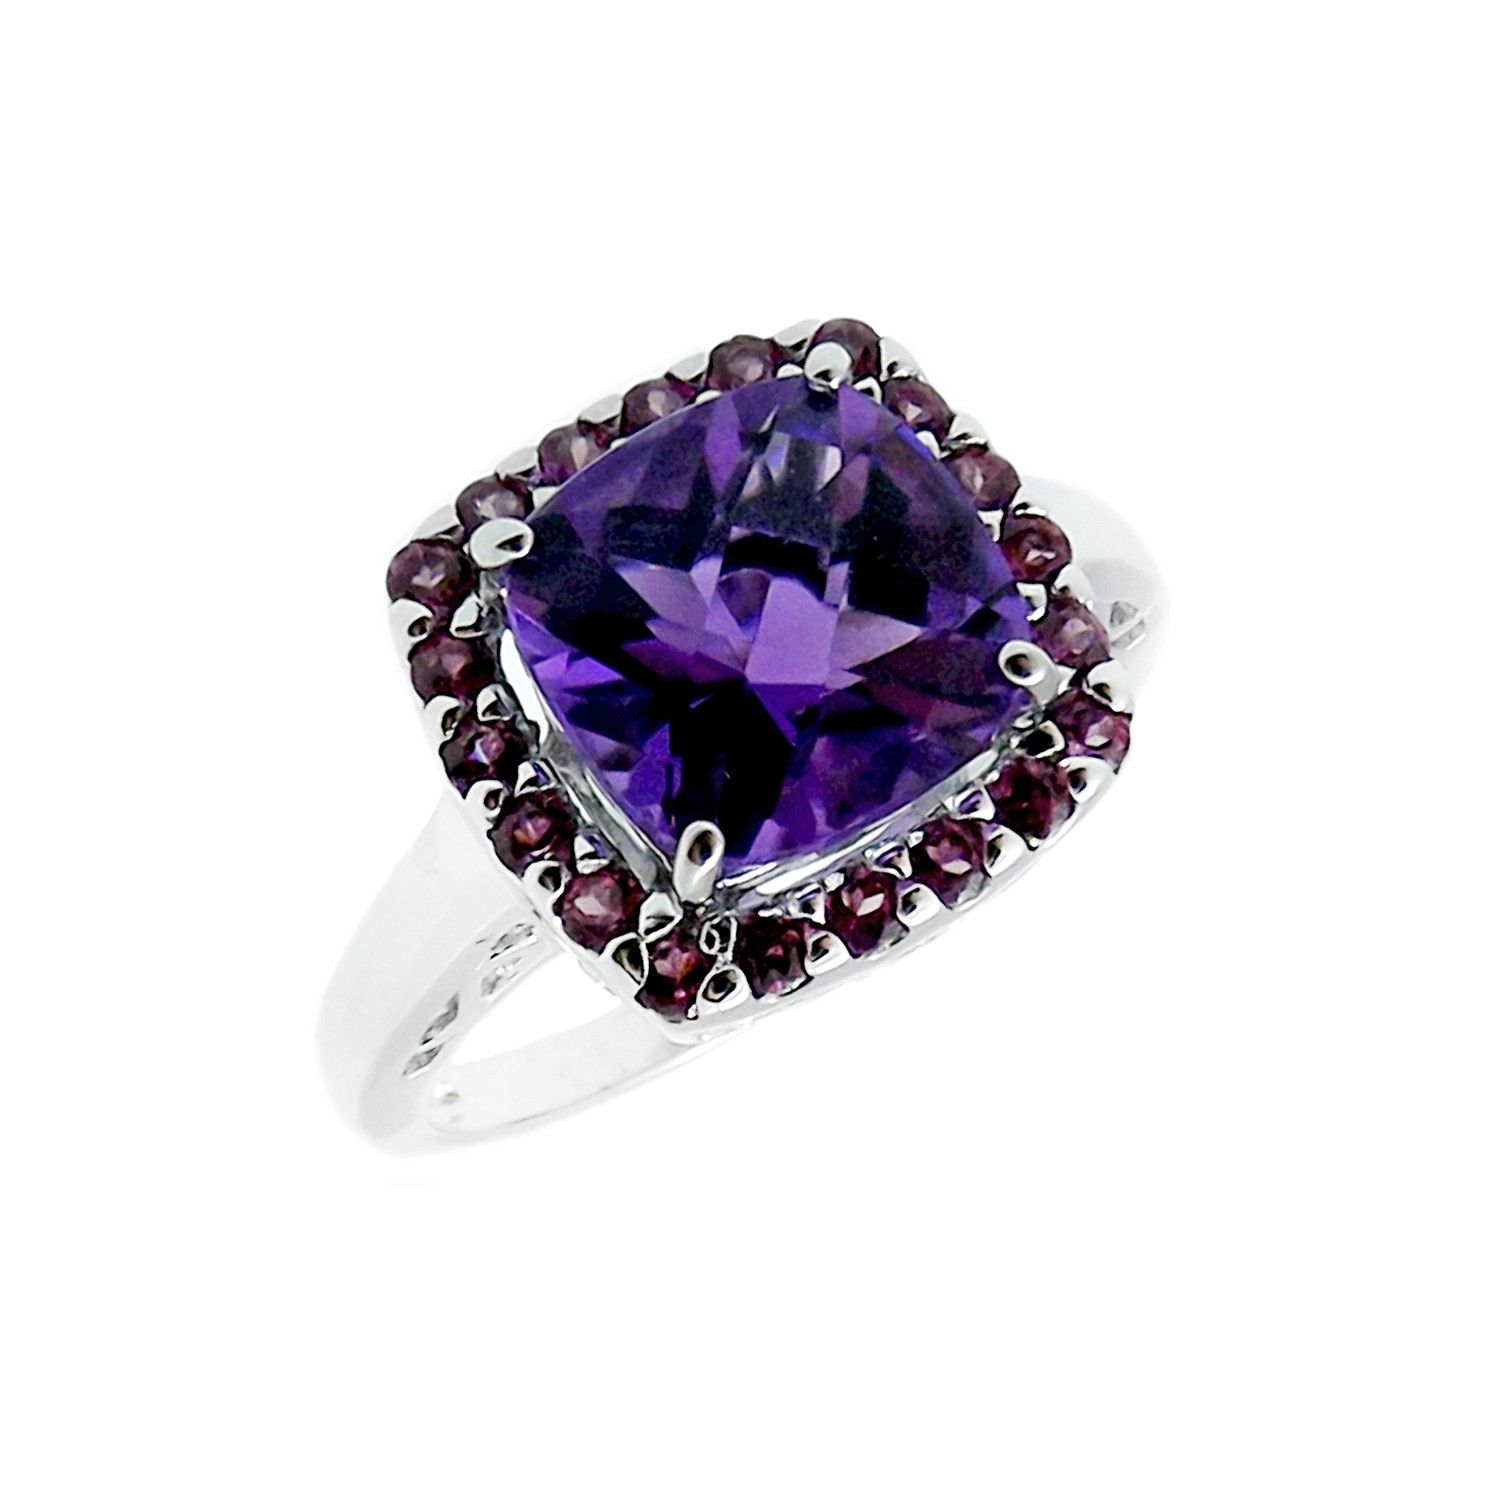 for guide caring gemstones advice investment tapper to customer purple care s expert color colored your gemstone